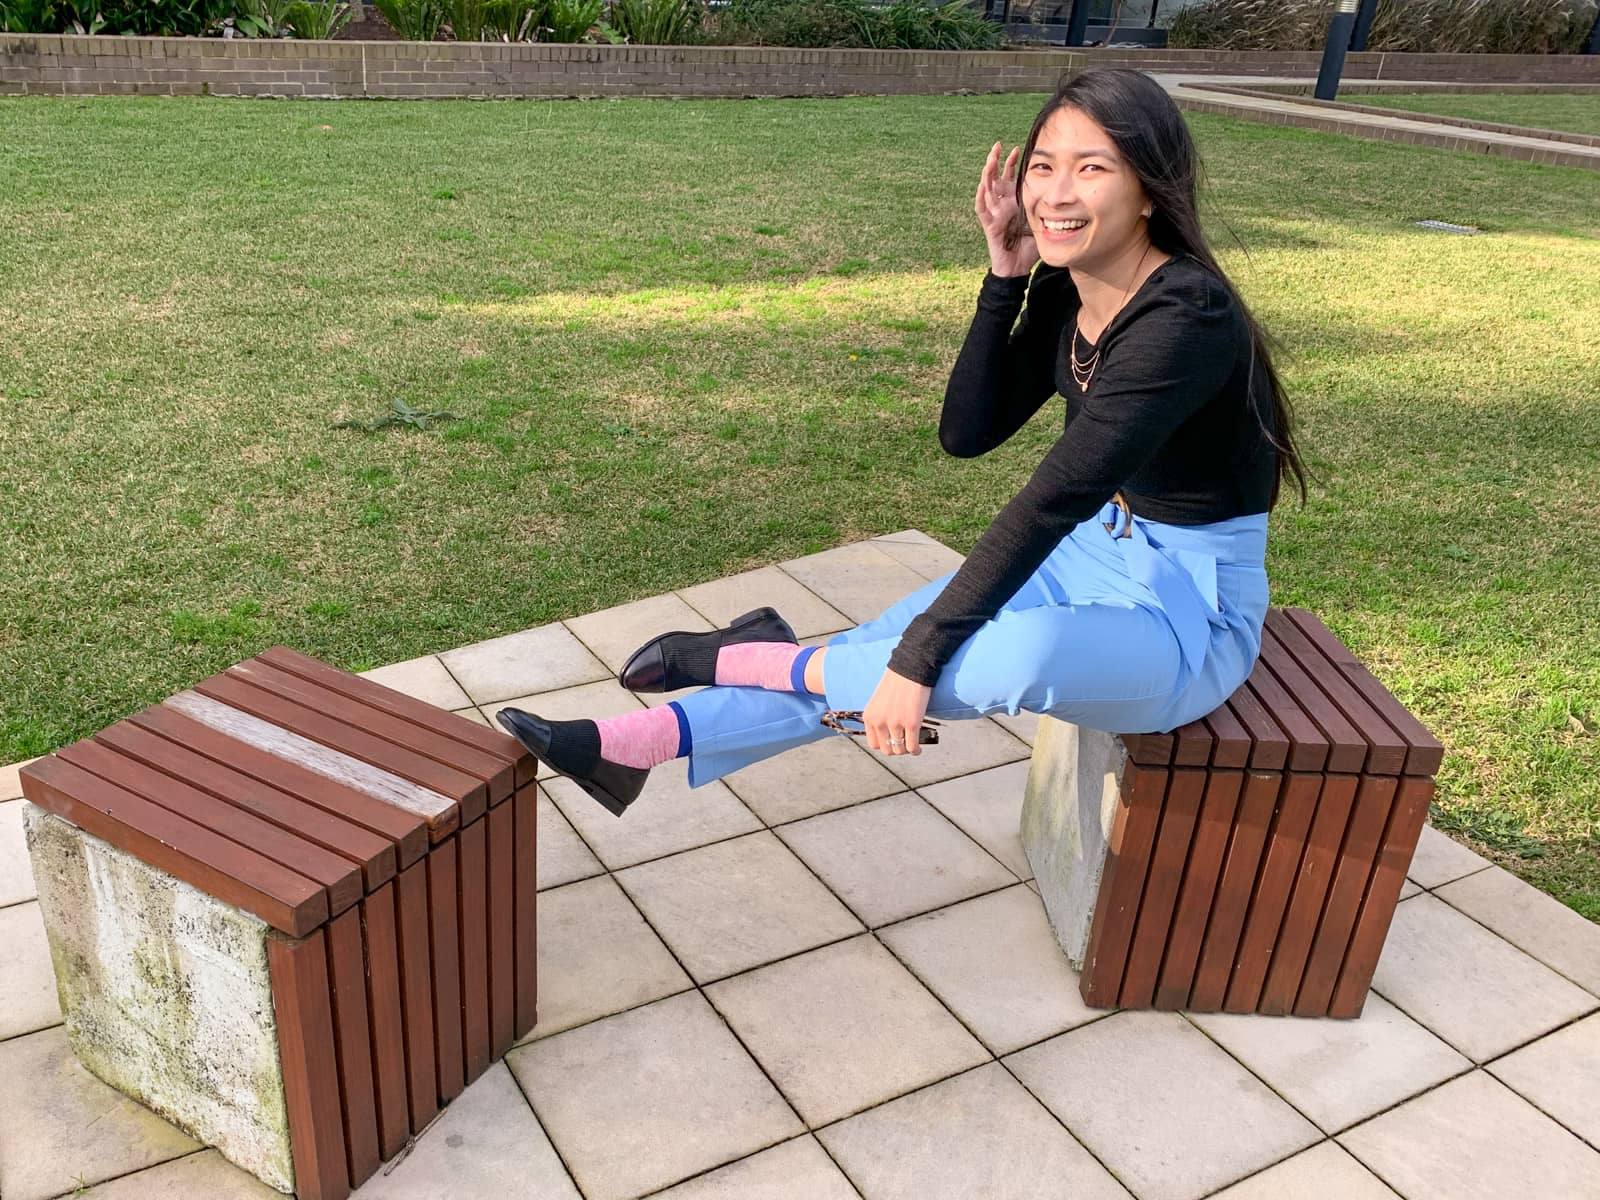 A woman sitting on a concrete cube-shaped block topped with wooden planks, made to function as a stool. She has her feet propped up on another wooden block. She is wearing a black long-sleeved top and sky blue pants, and is smiling and tucking hair behind her ear.